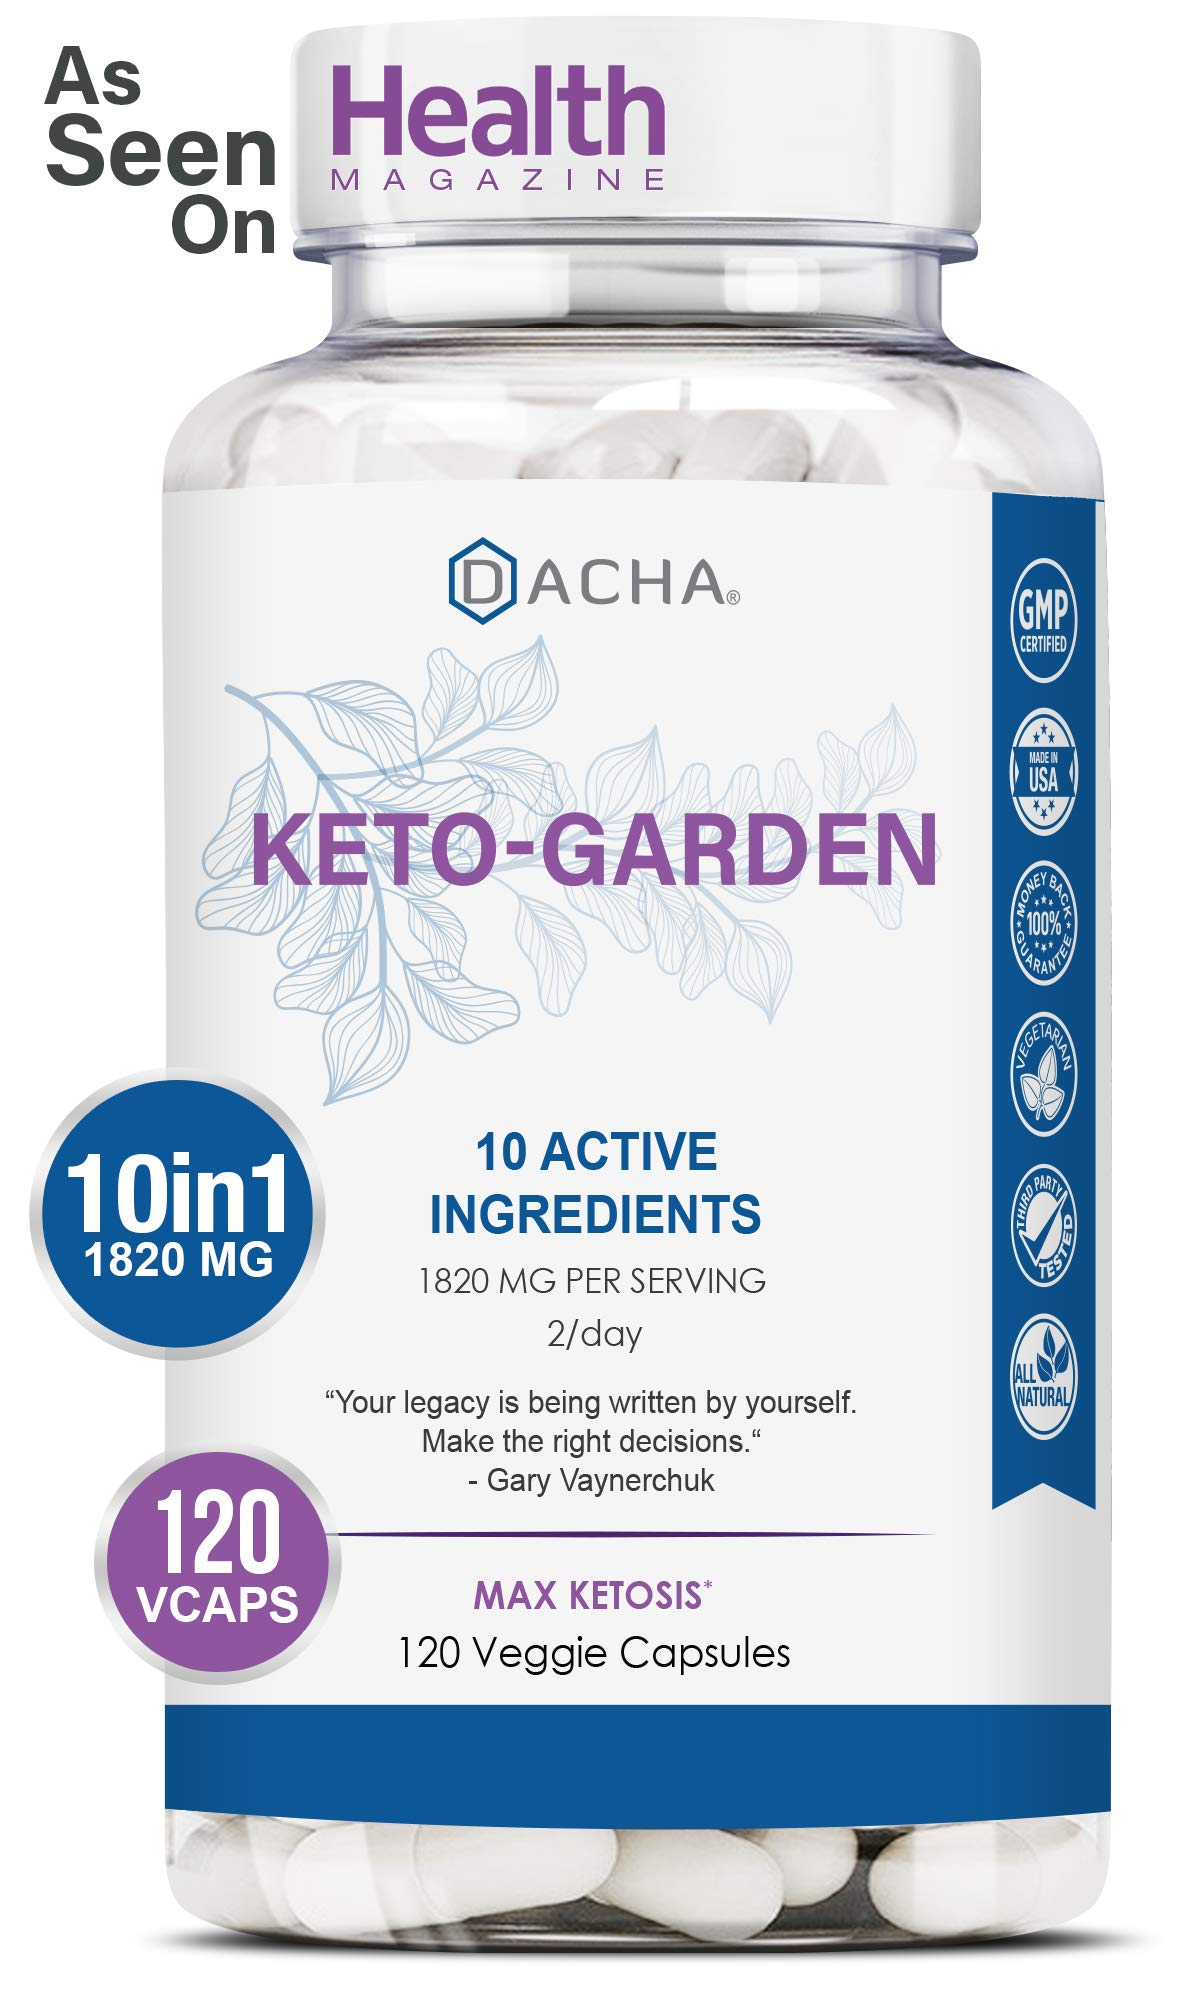 Ultra Fast Keto Boost – 1820 mg KetoGarden Pure Pills, 6X Extreme Rapid Ketosis, Manage Cravings Super Fast, Utilize Fat…